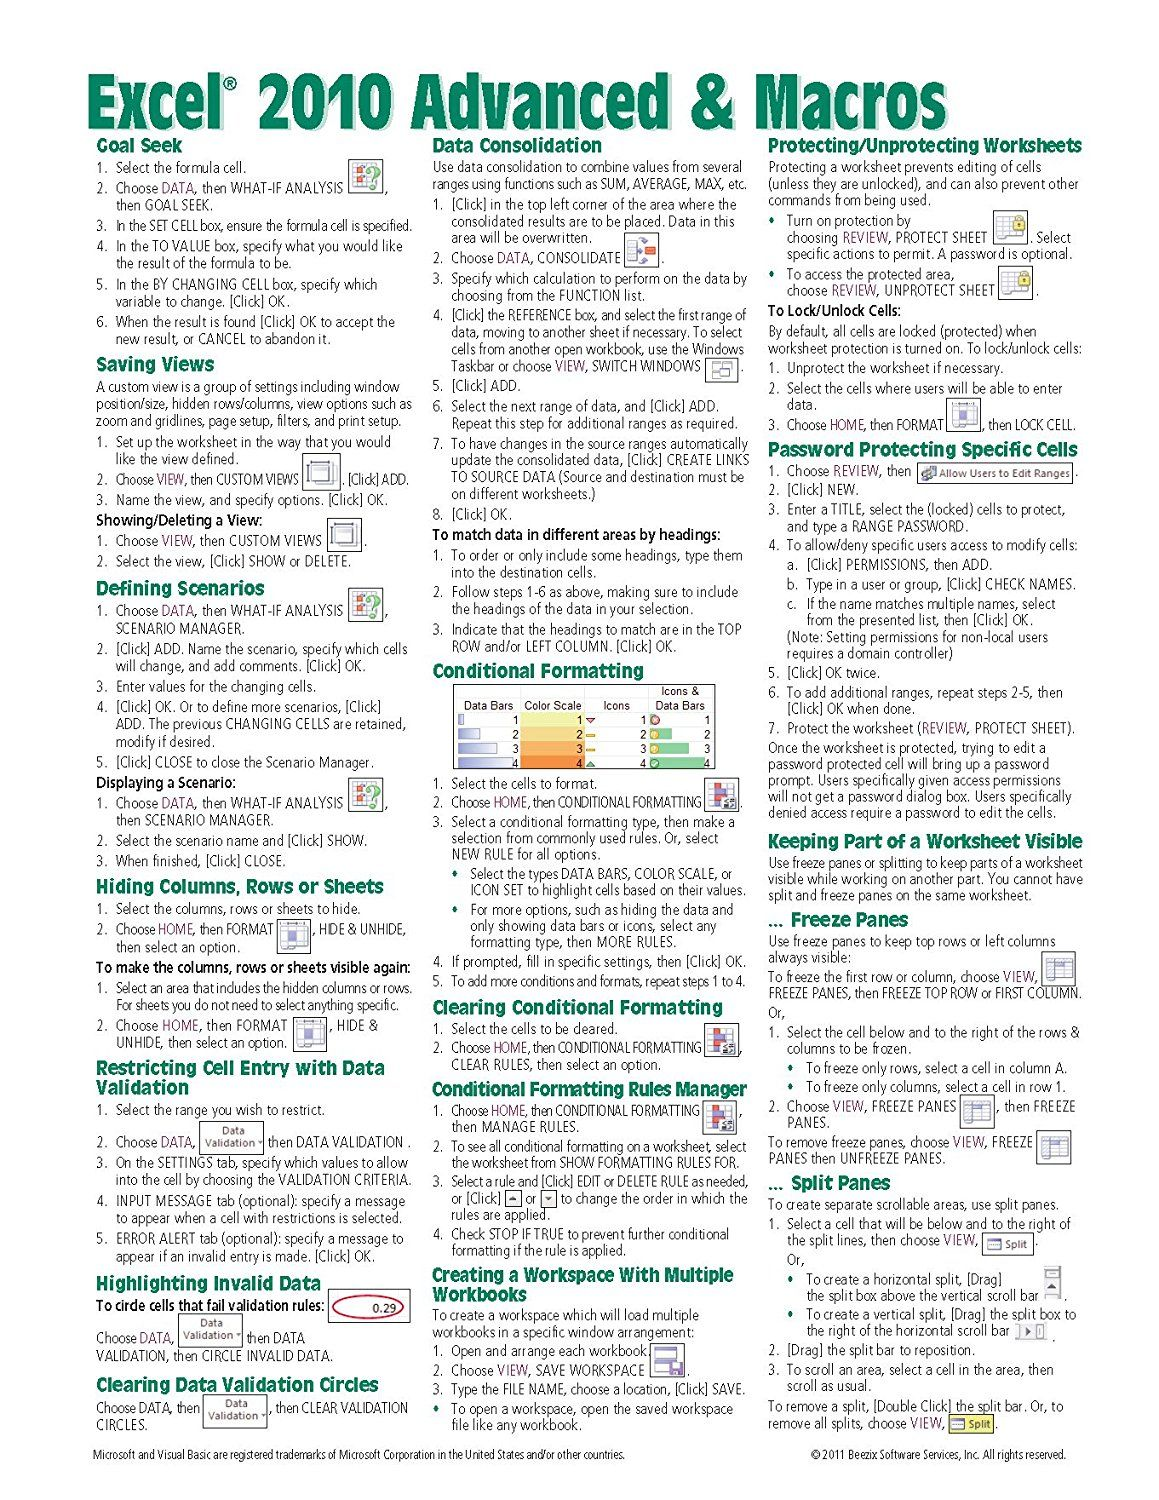 Microsoft Excel 2010 Advanced & Macros Quick Reference Guide (Cheat Sheet  of Instructions, Tips